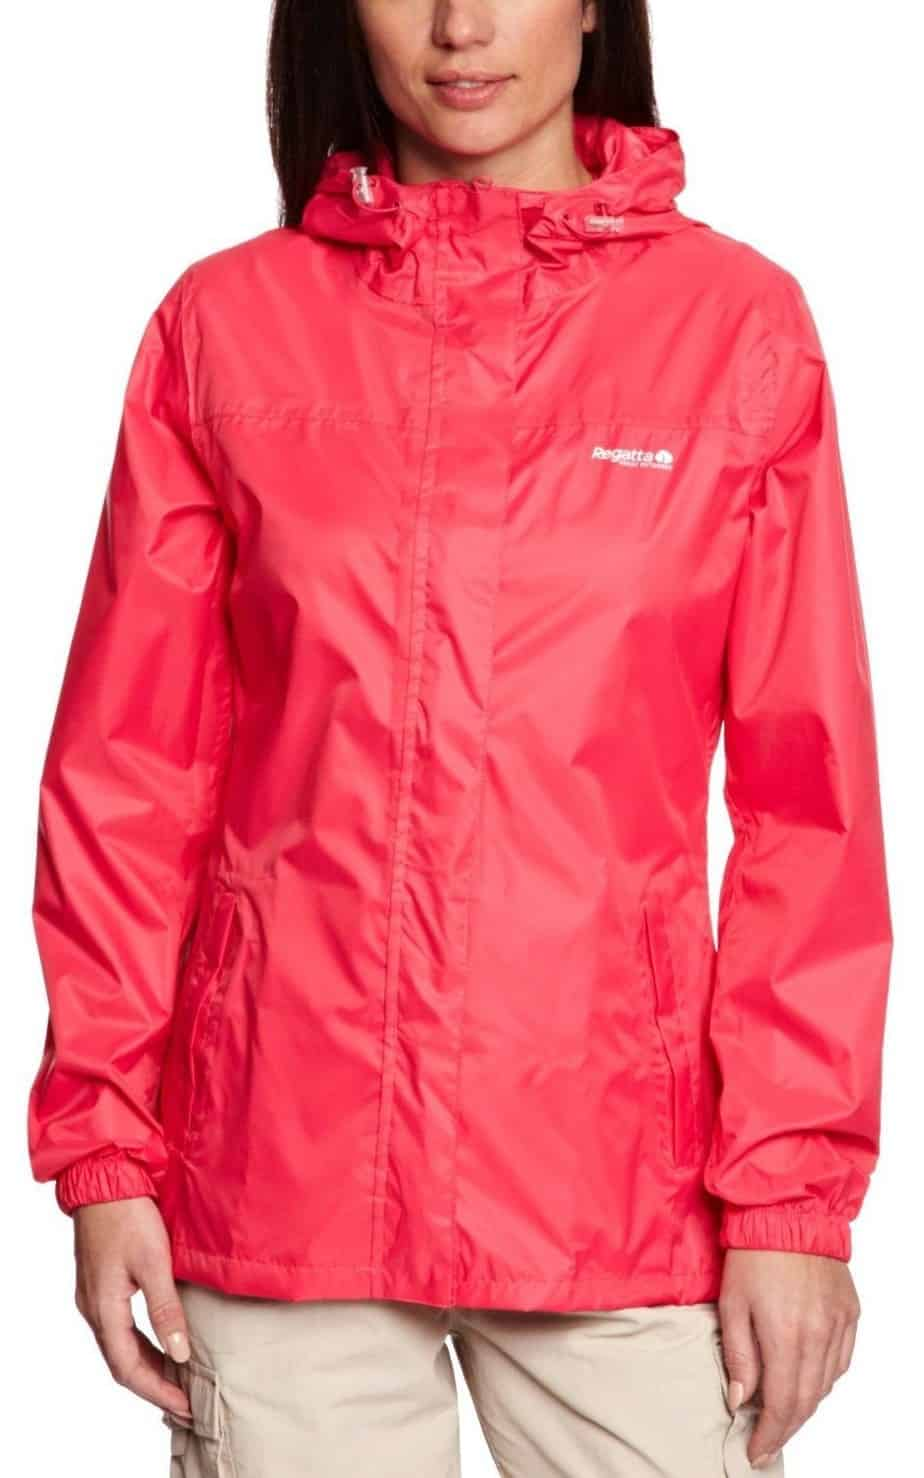 Regatta Women's Pack It Waterproof Jacket